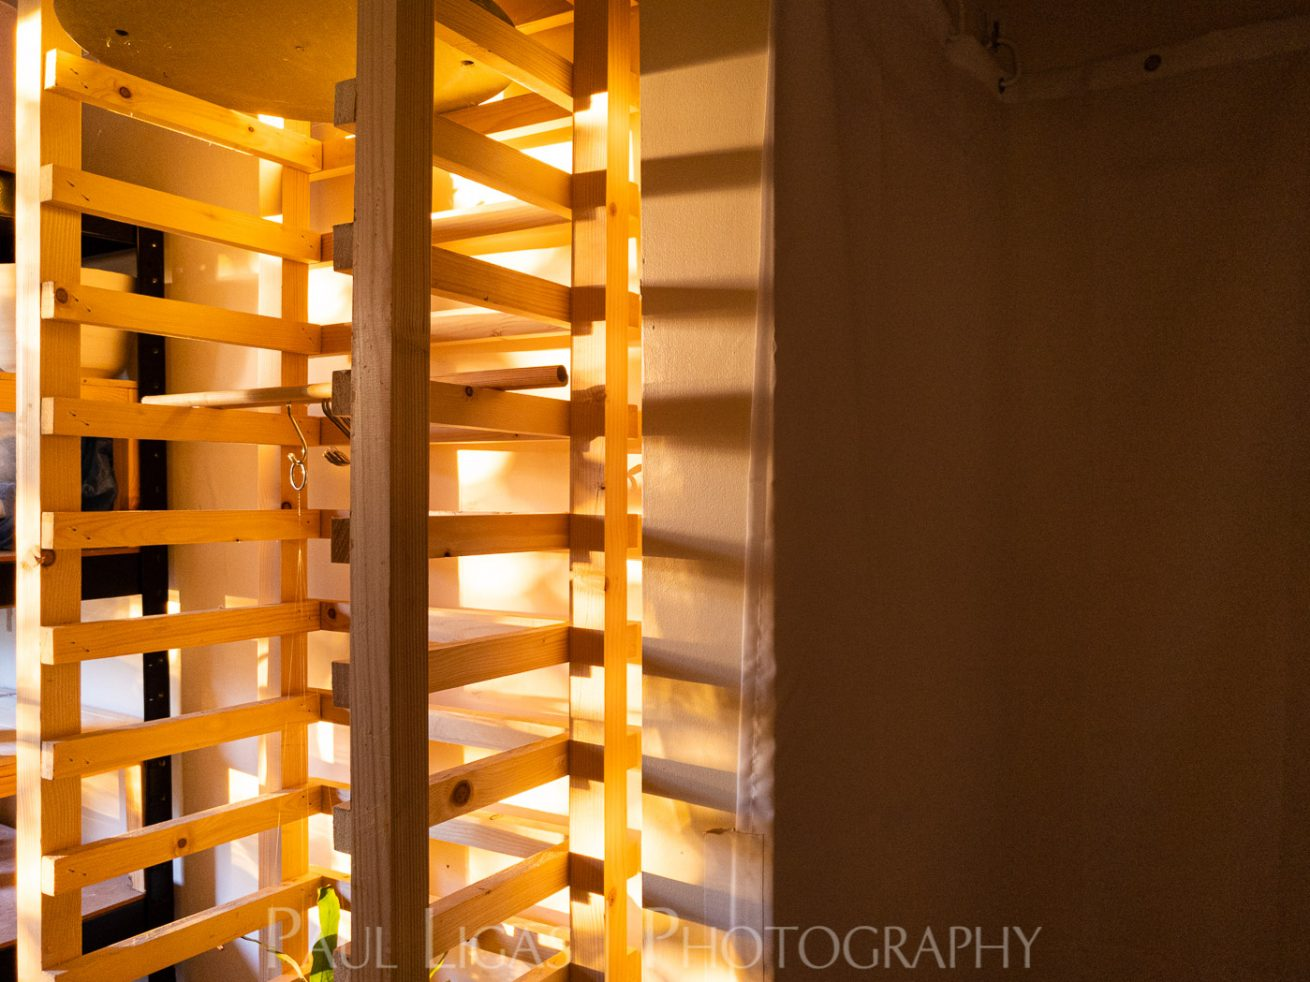 photos from inside a lockdown part 13 paul ligas photography hereford ledbury-210055